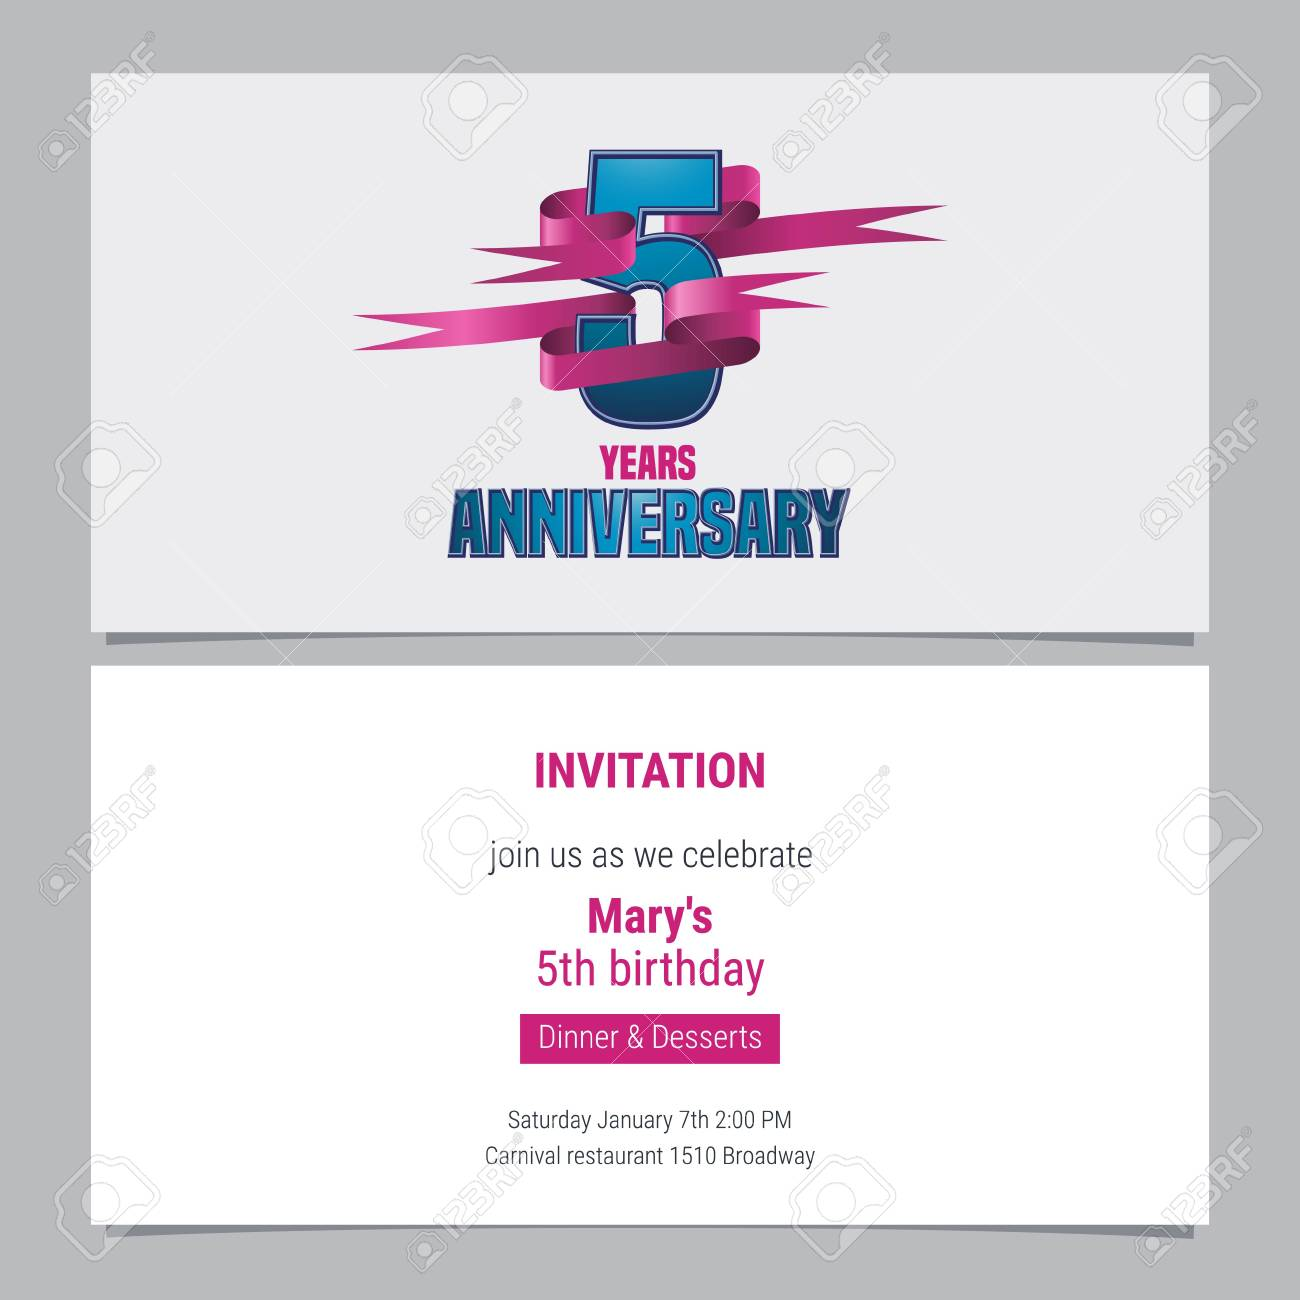 5 years anniversary invitation to celebration vector illustration 5 years anniversary invitation to celebration vector illustration design element with text for 5th birthday stopboris Image collections